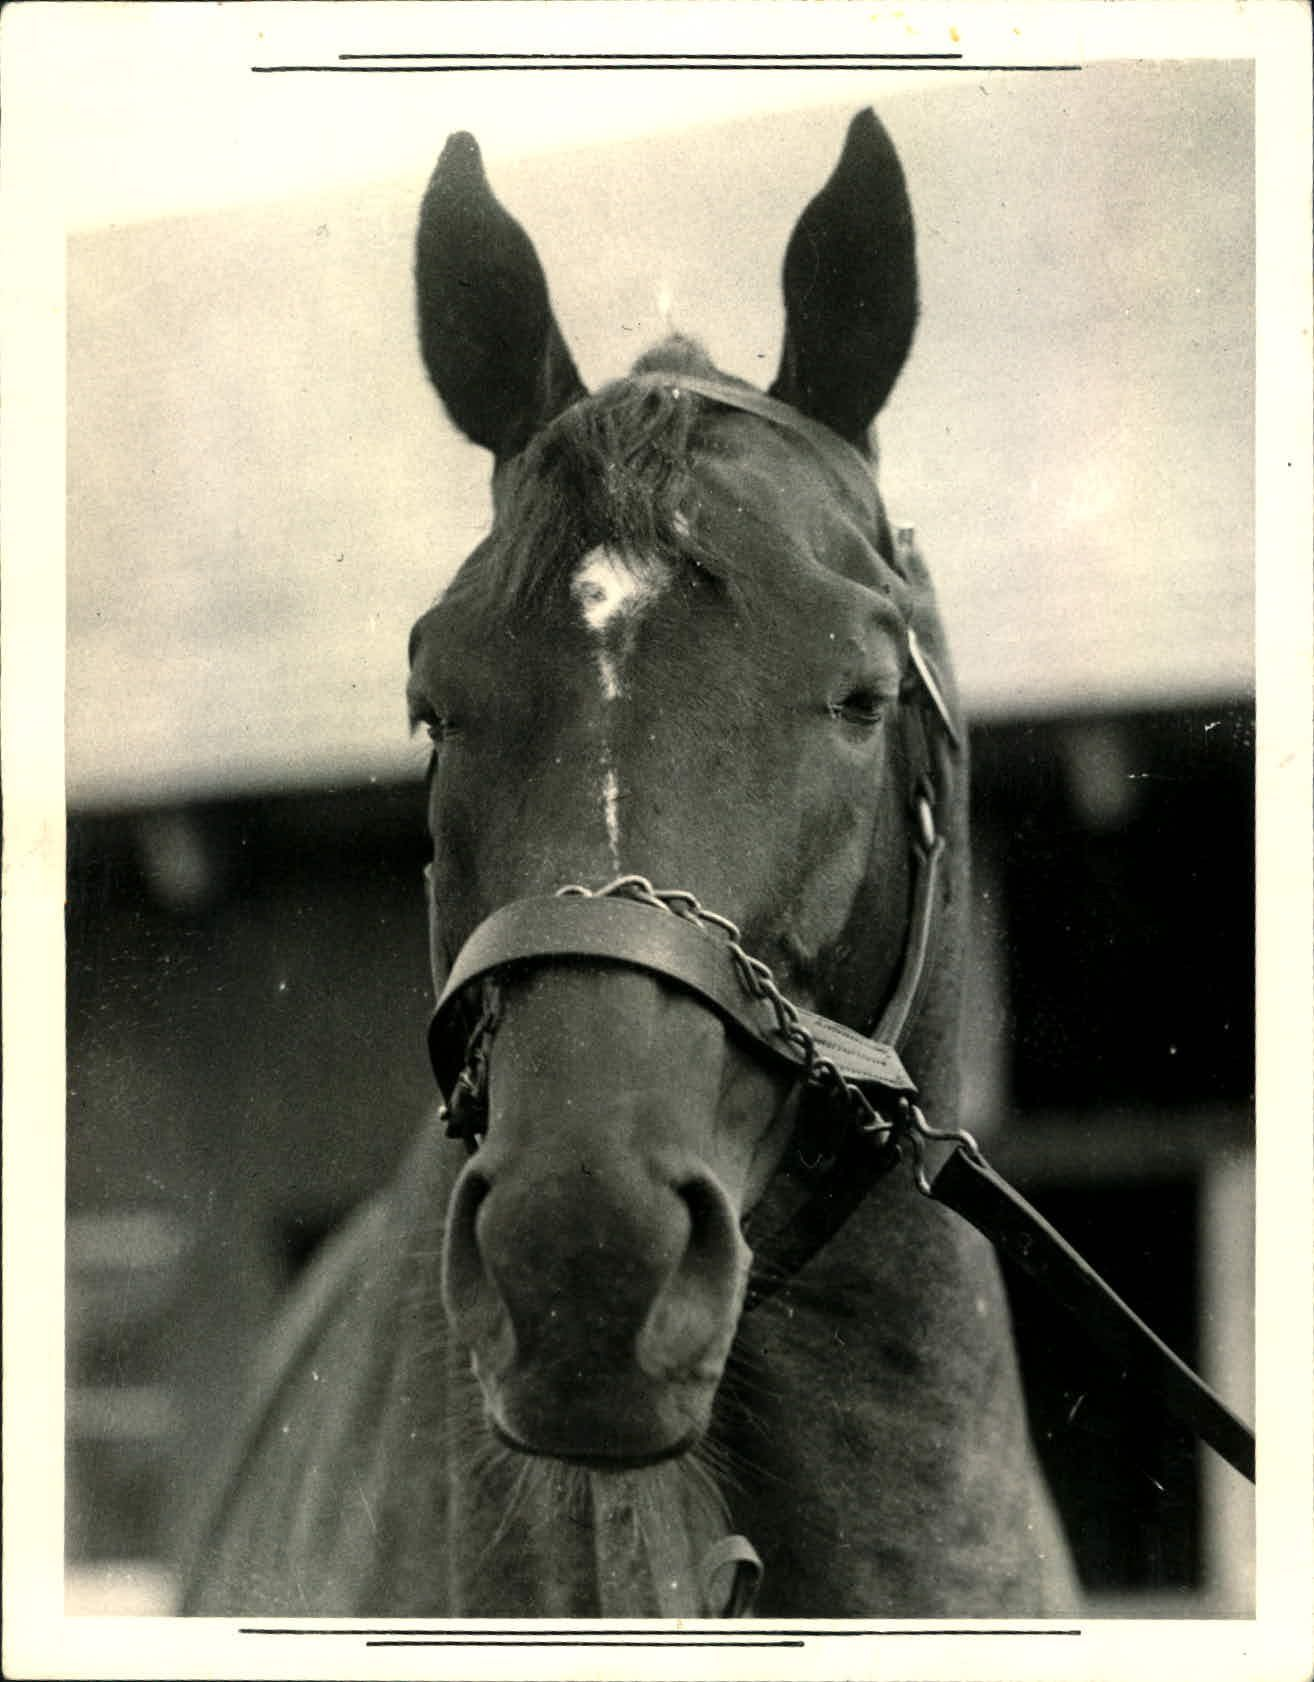 1937 Man o' War racehorse. 1 of the greatest Thoroughbred race horses of all time.